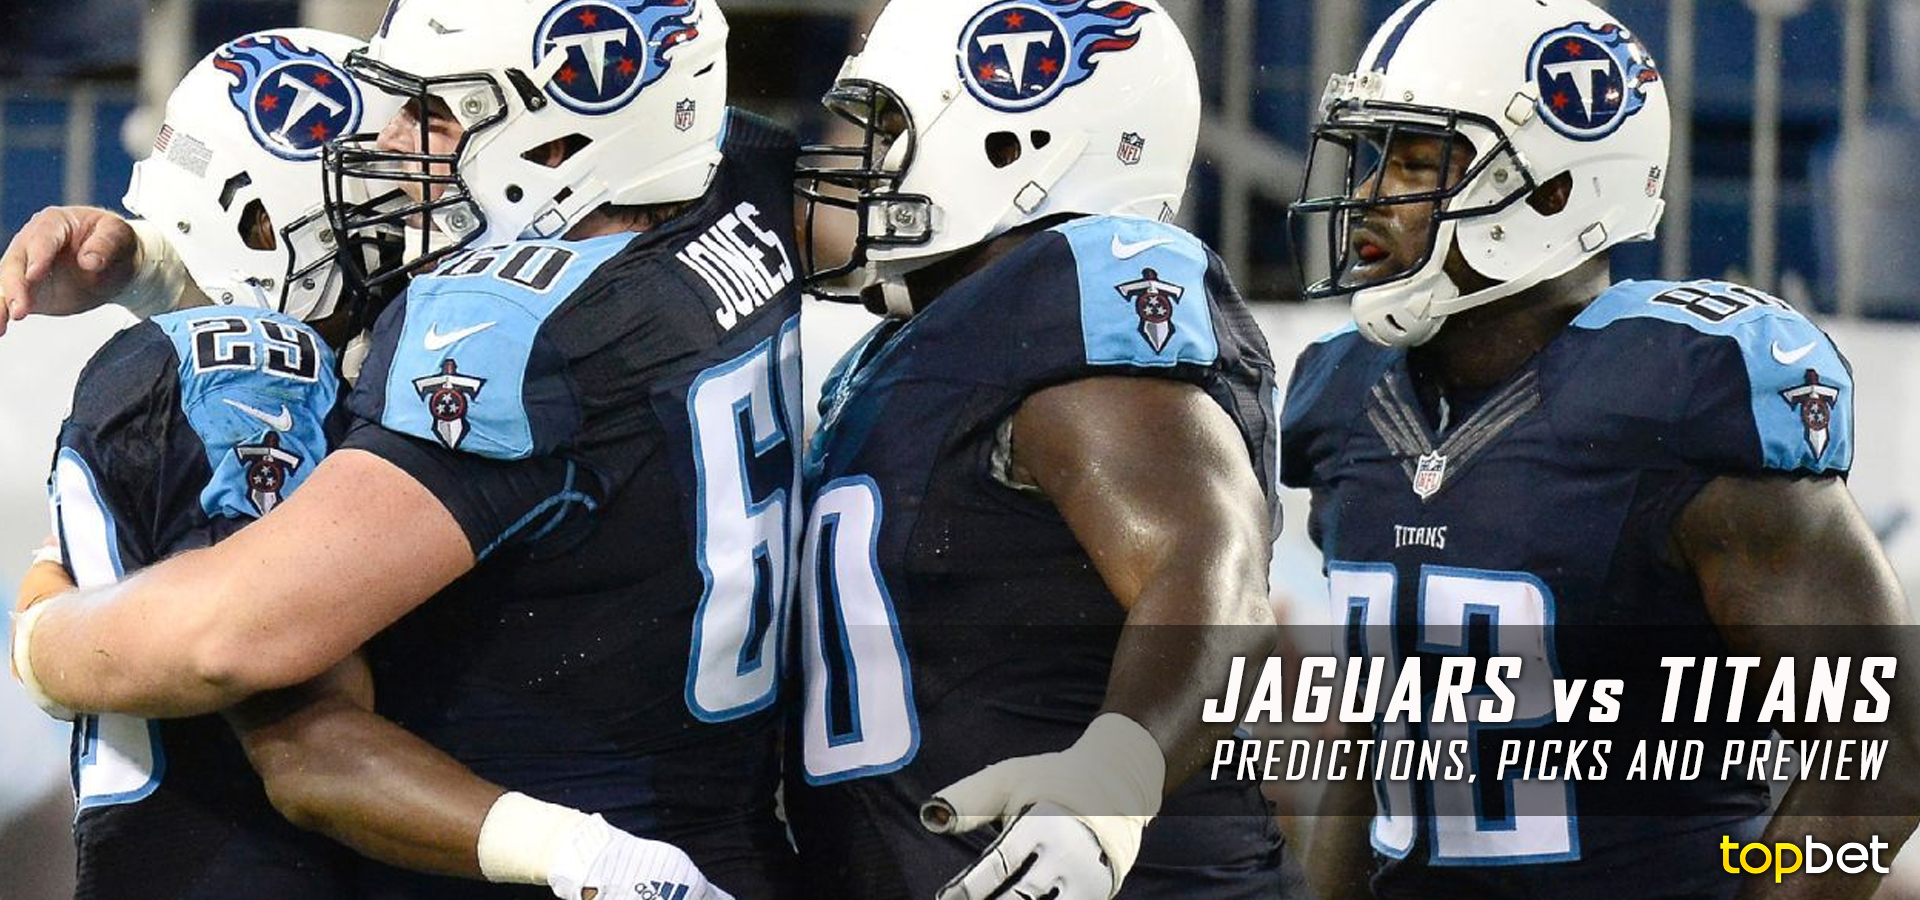 titans s chance jaguars flexed tickets last time year vs to new on twitter down status tennessee pm start one eve jaguar